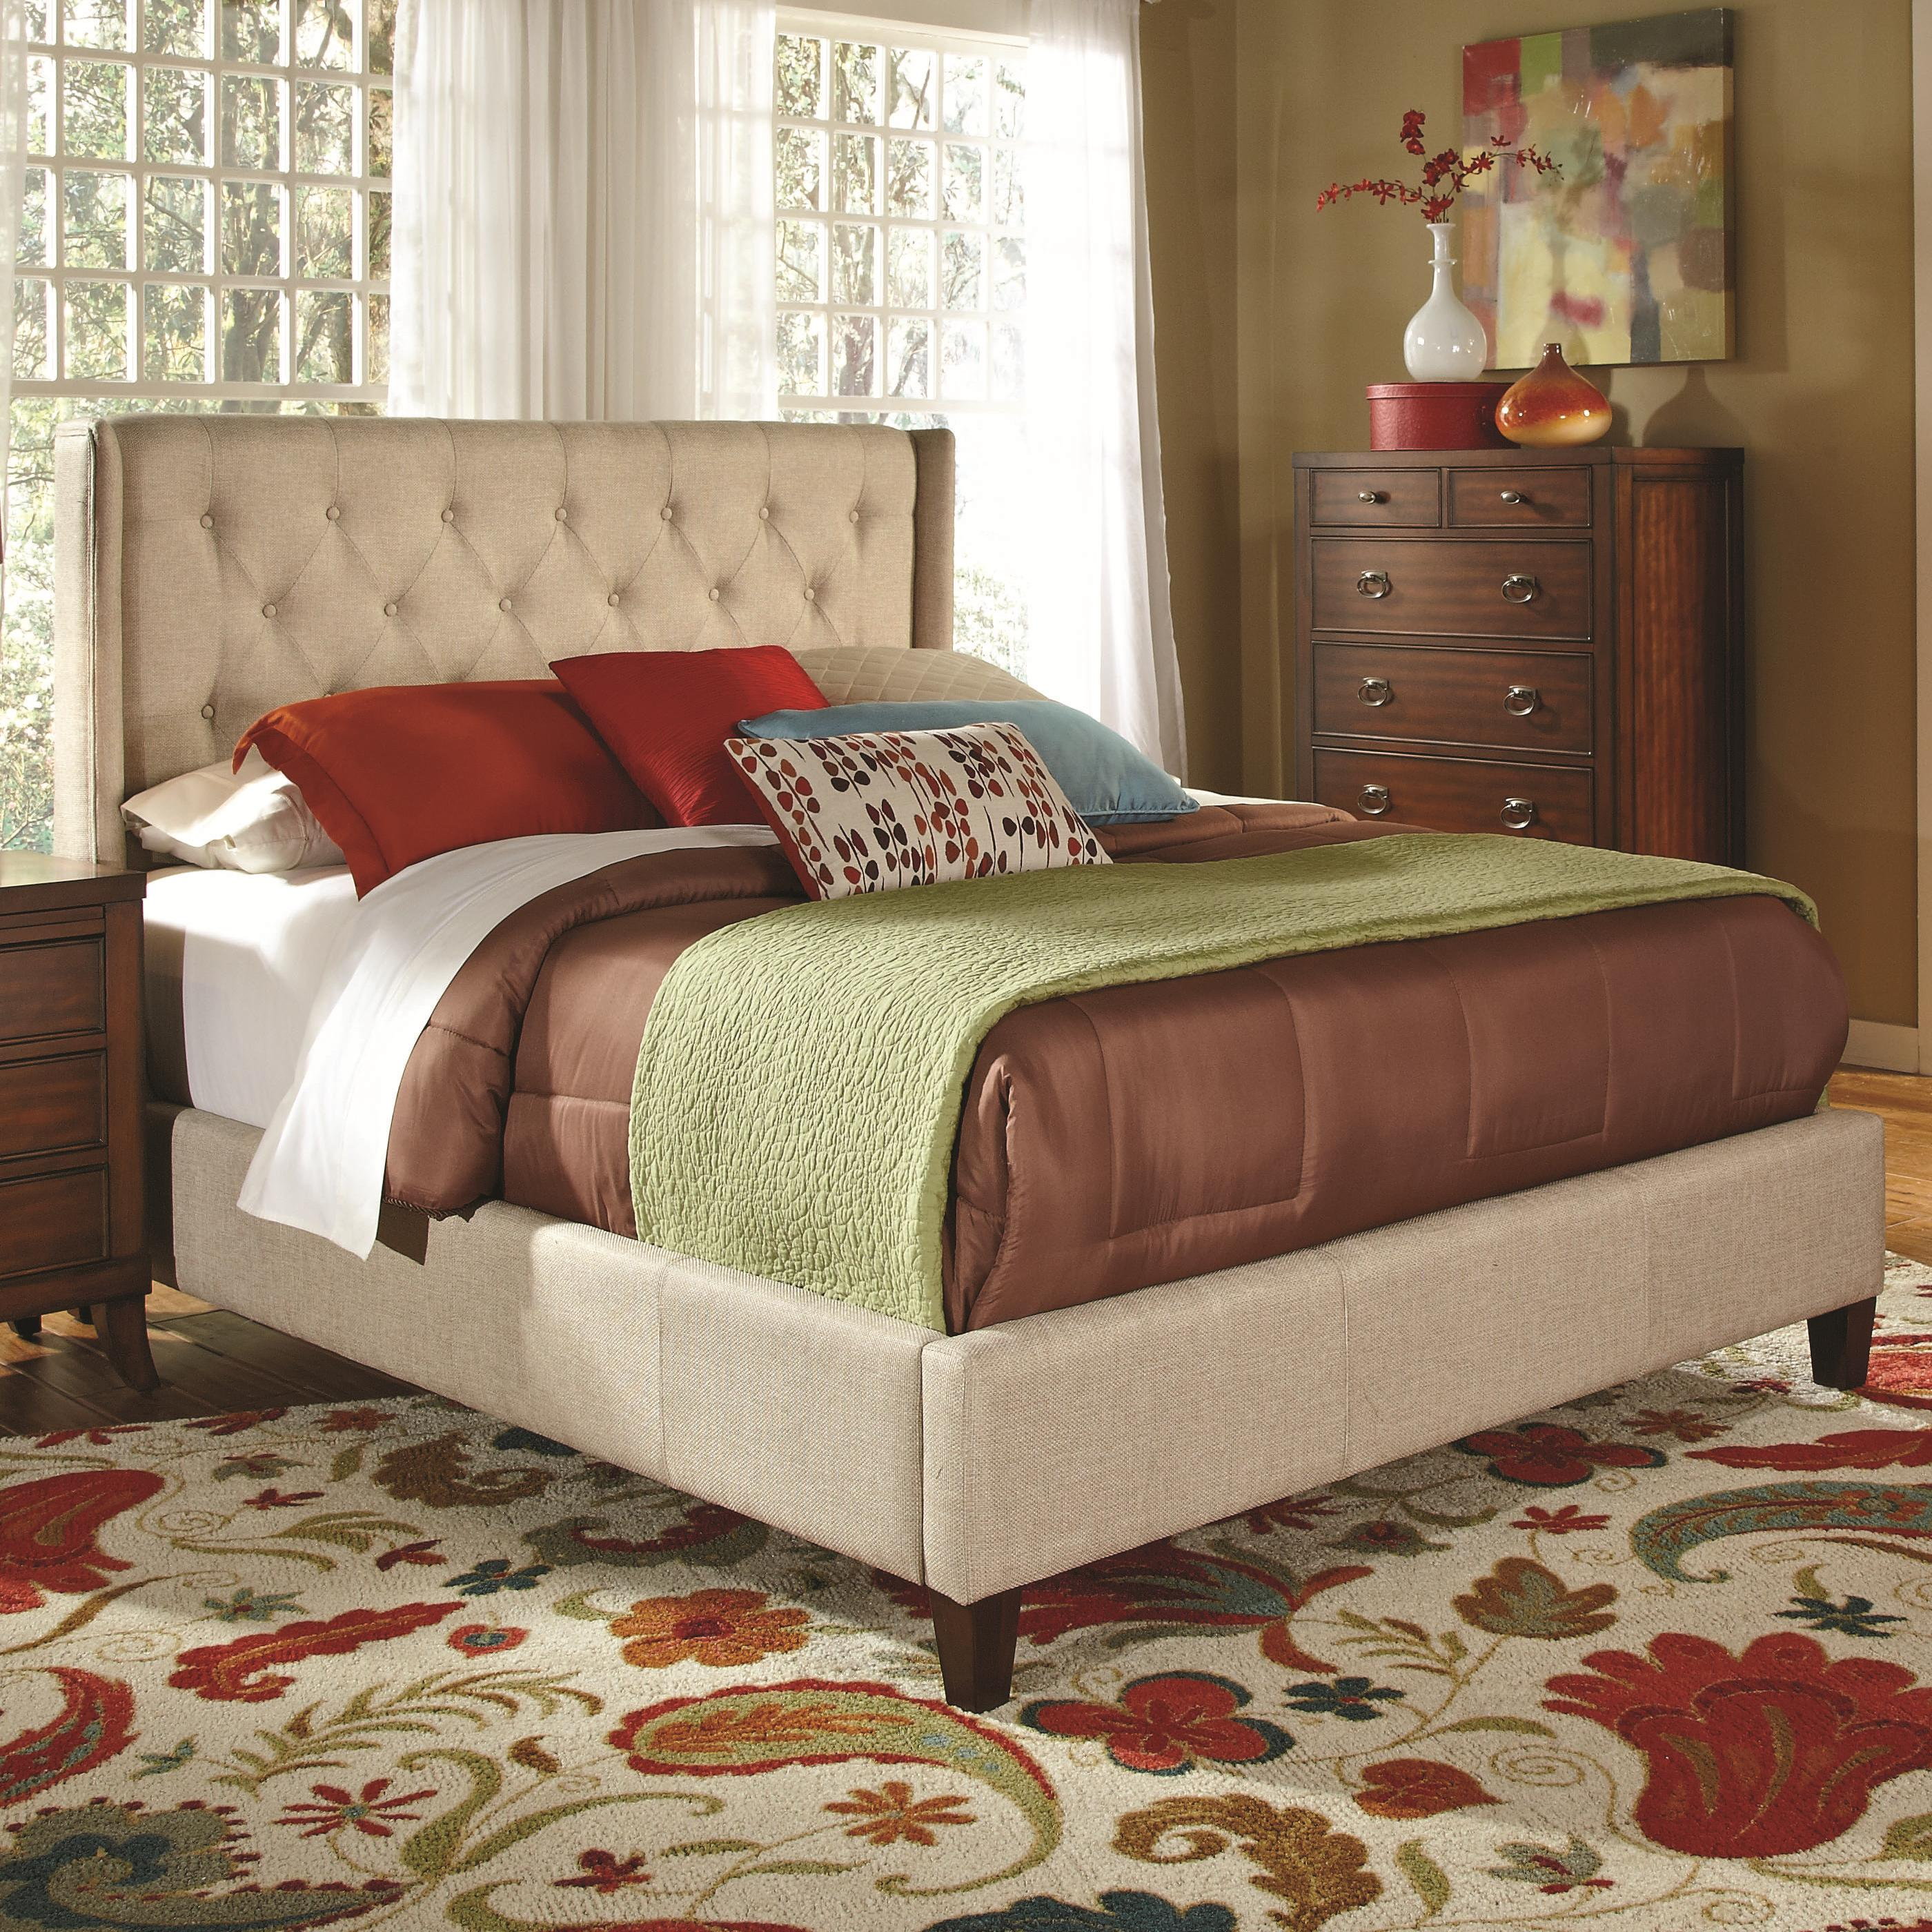 Coaster upholstered beds upholstered california king bed with tall tufted headboard